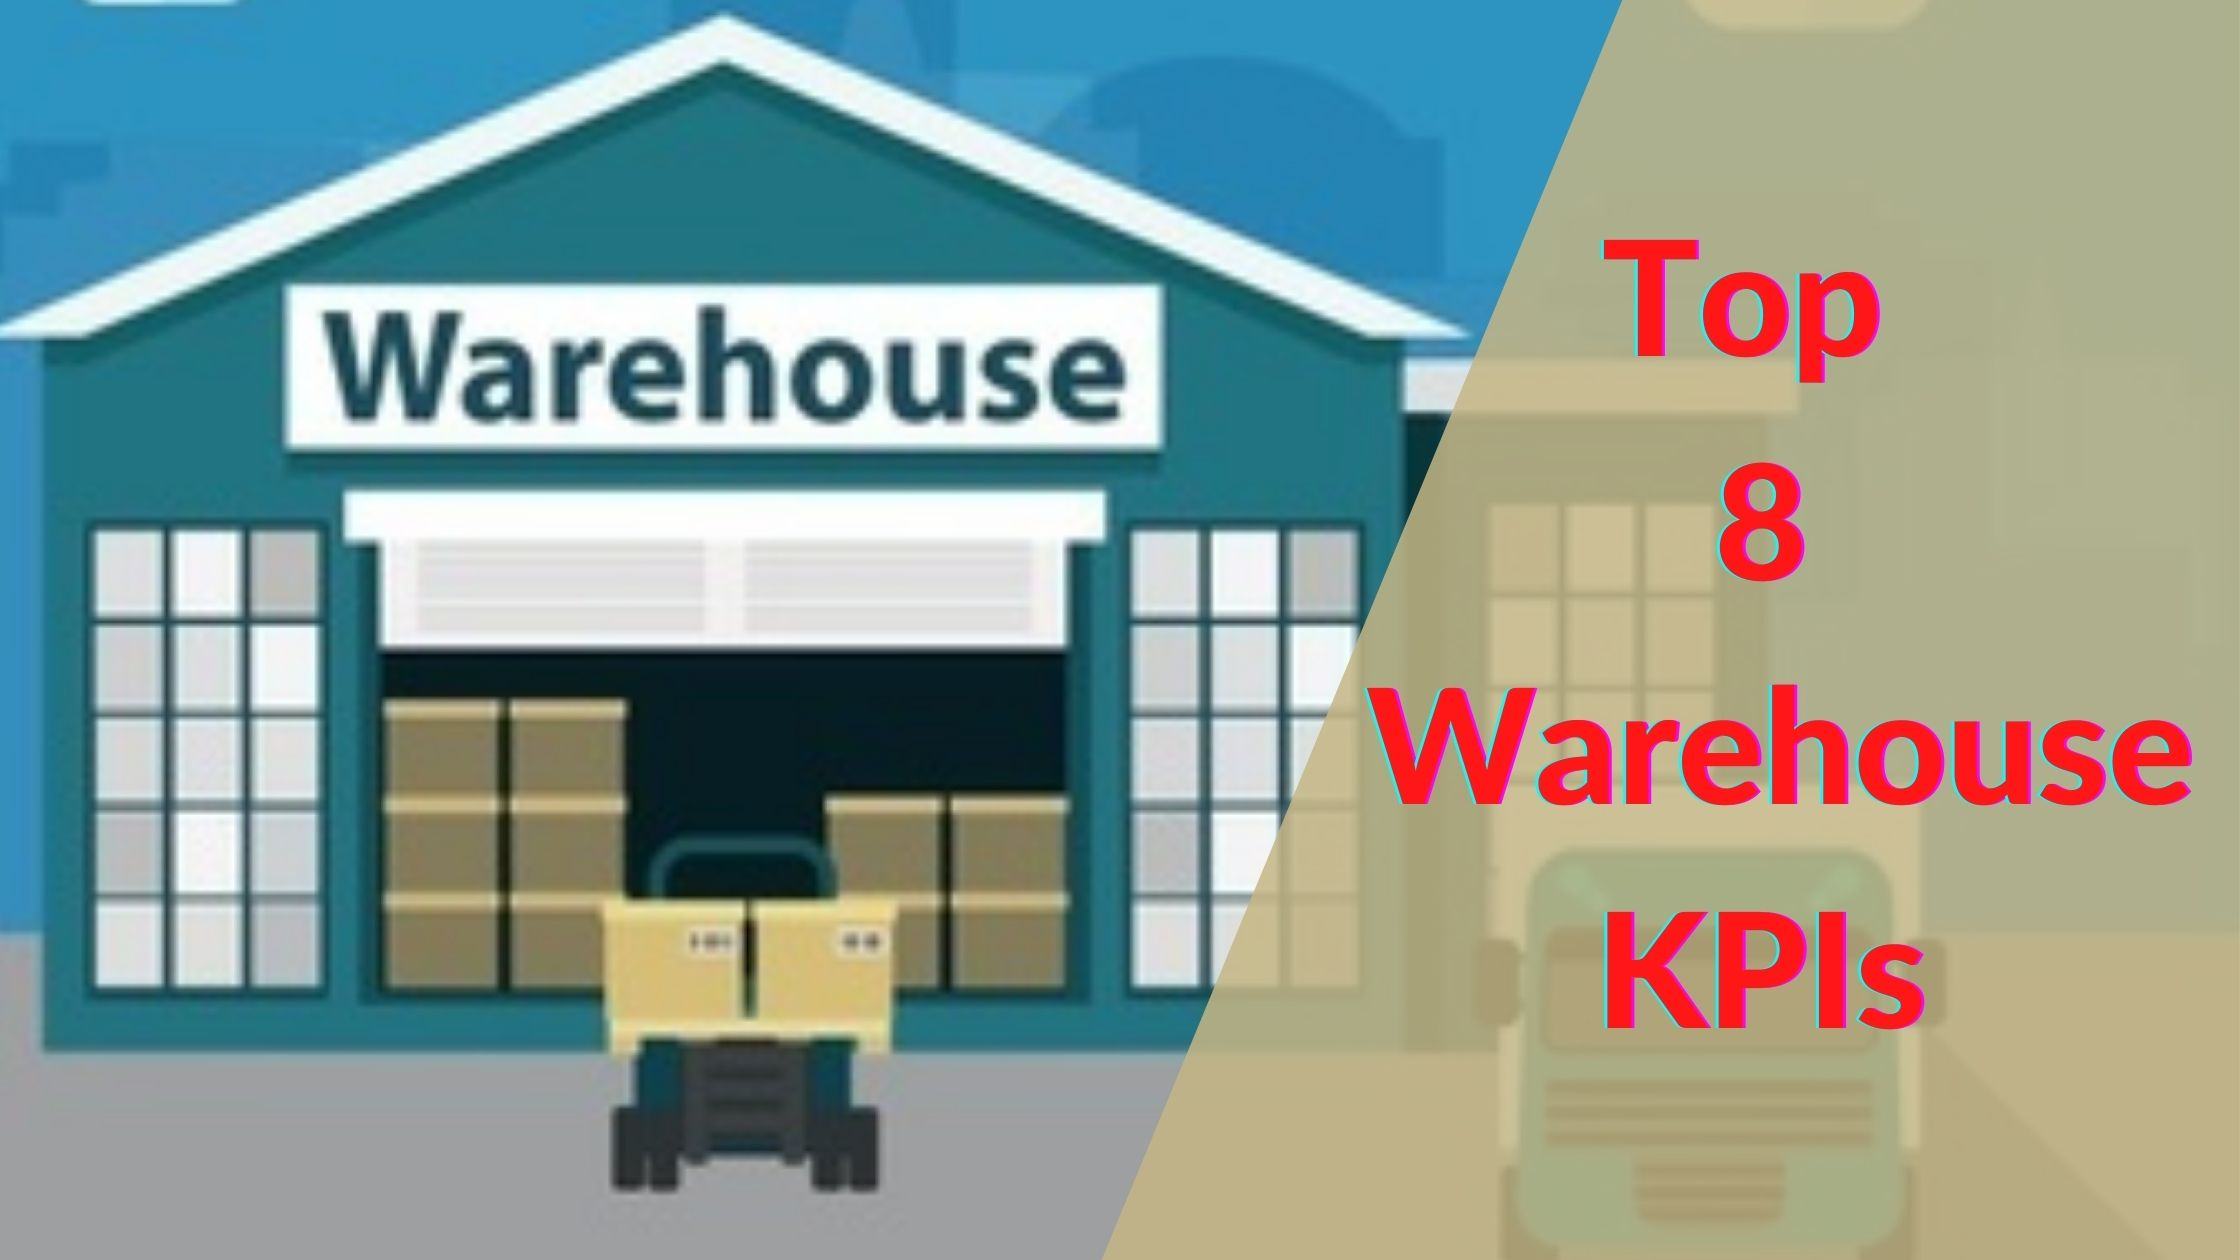 Top 8 Warehouse KPIs